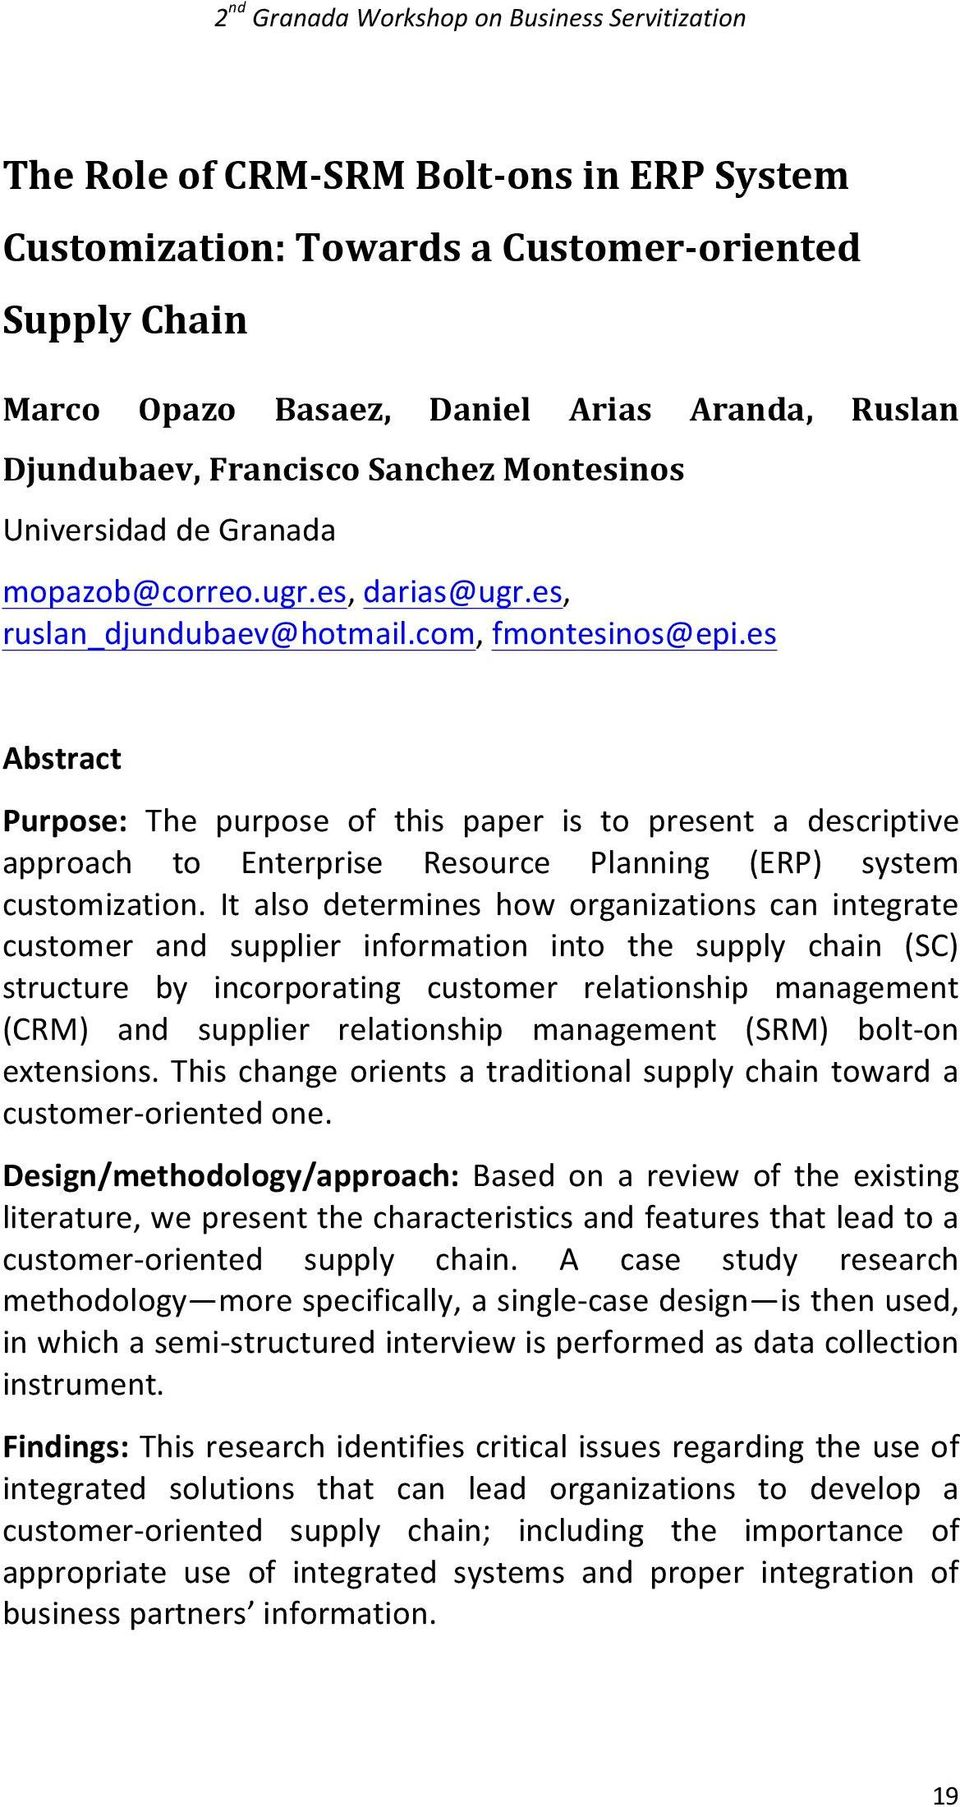 es Abstract Purpose: The purpose of this paper is to present a descriptive approach to Enterprise Resource Planning (ERP) system customization.